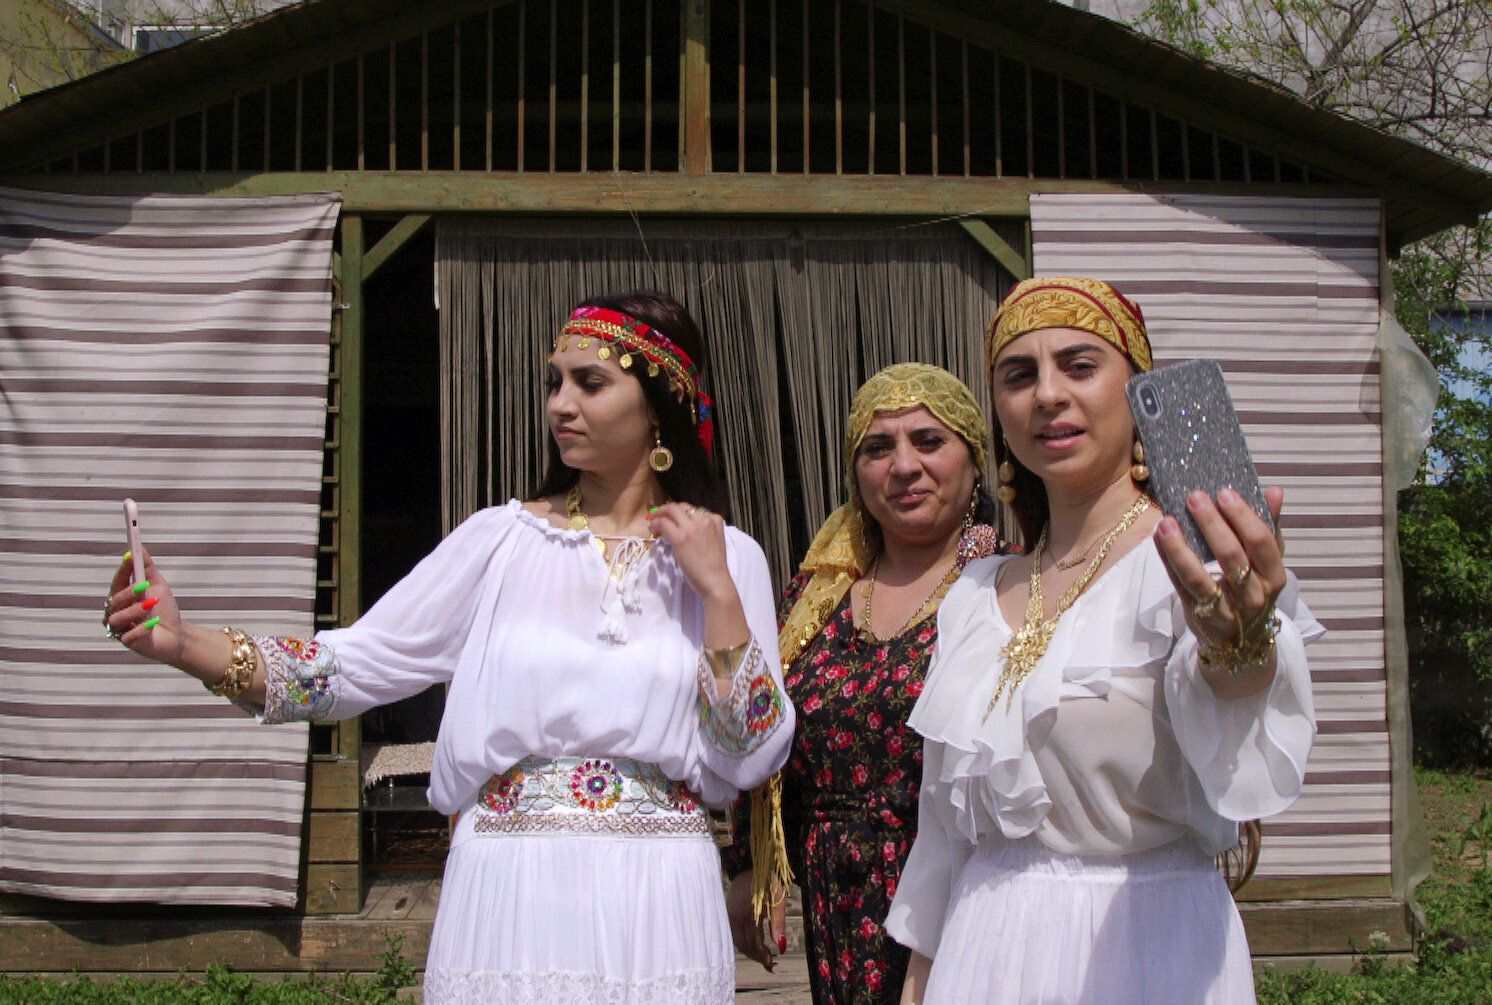 A family of Romanian witches livestream a ritual on Facebook for their followers, in Mogosoaia near Bucharest, Romania April 25, 2019. Picture taken April 25, 2019. REUTERS/Emily Wither